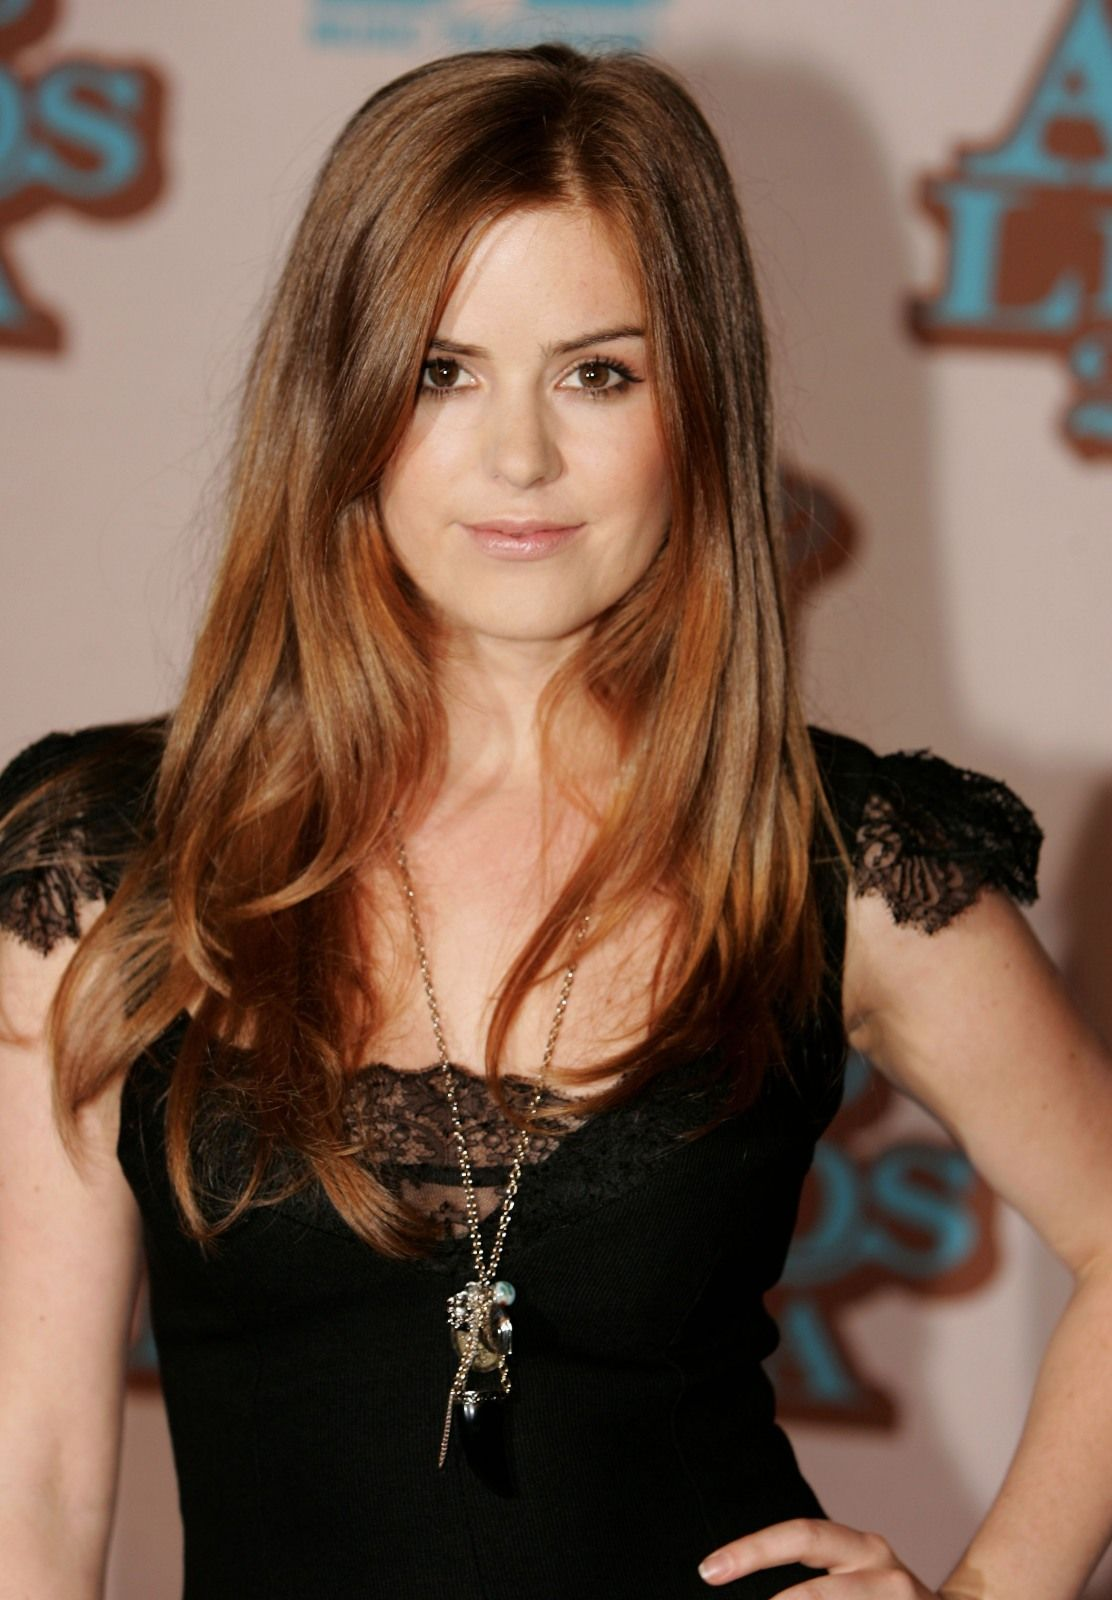 isla fisher gif huntisla fisher фото, isla fisher 2016, isla fisher husband, isla fisher and amy adams, isla fisher 2017, isla fisher site, isla fisher young, isla fisher фильмы, isla fisher movies, isla fisher wikipedia, isla fisher wiki, isla fisher gallery, isla fisher кинопоиск, isla fisher gif hunt, isla fisher fan site, isla fisher photos, isla fisher gatsby, isla fisher films, isla fisher net, isla fisher photoshoot